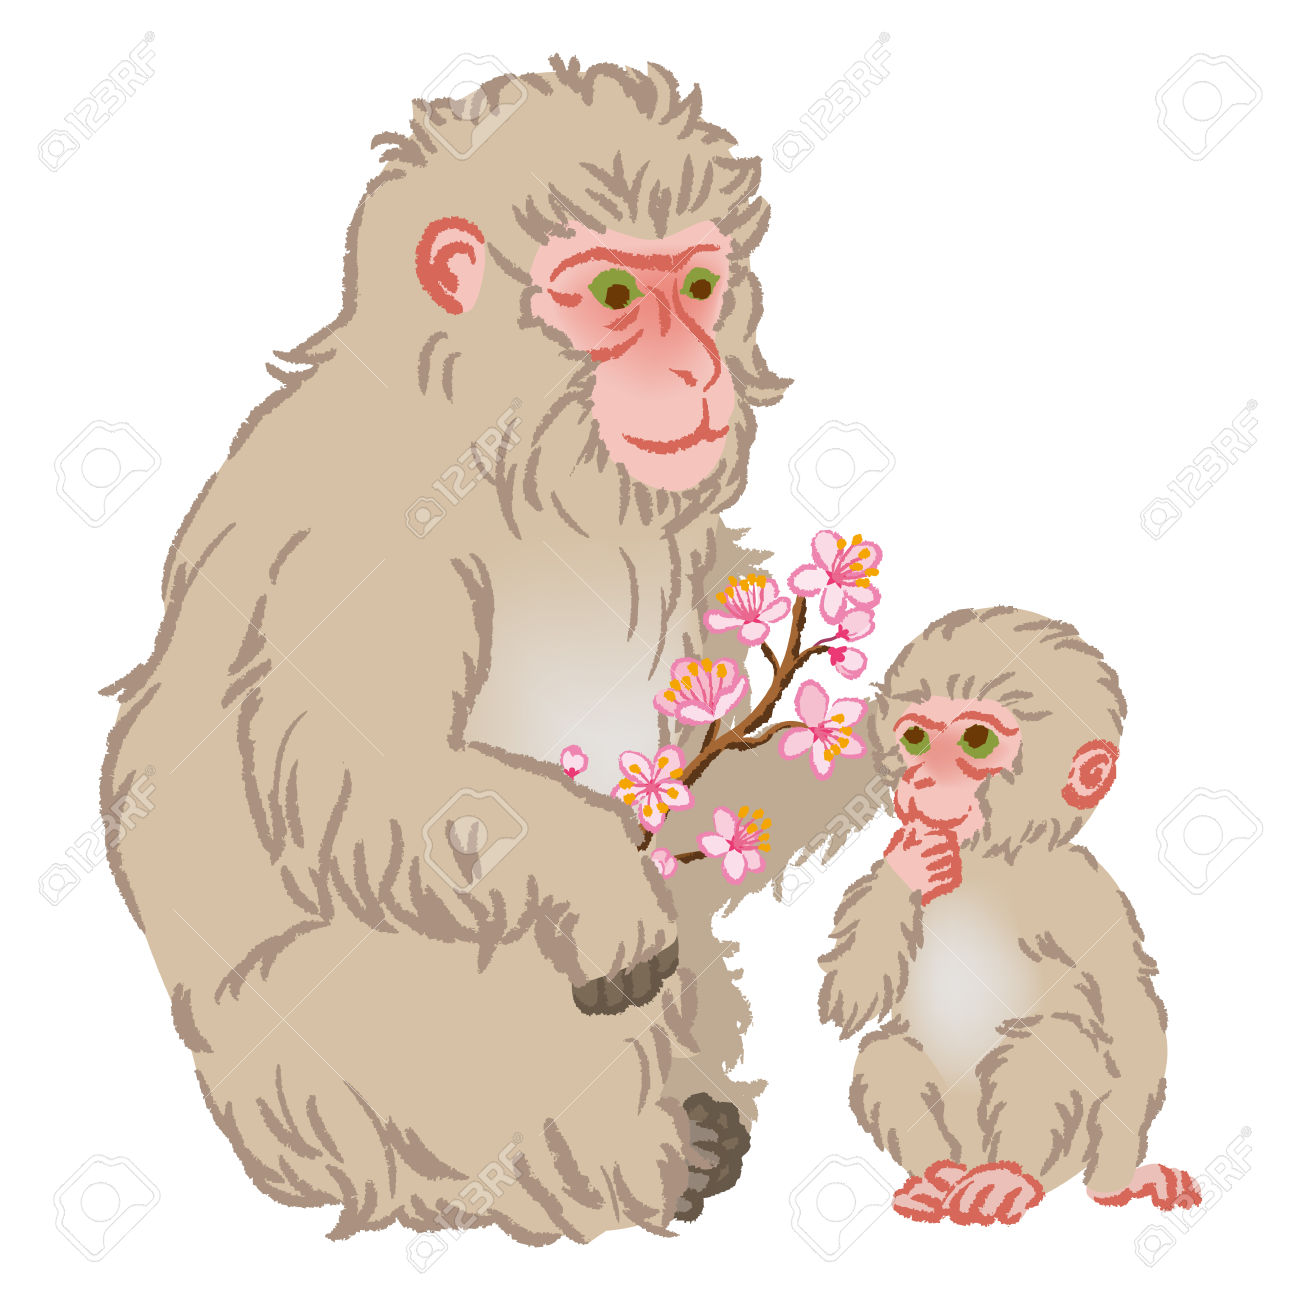 Japanese Macaque clipart #12, Download drawings